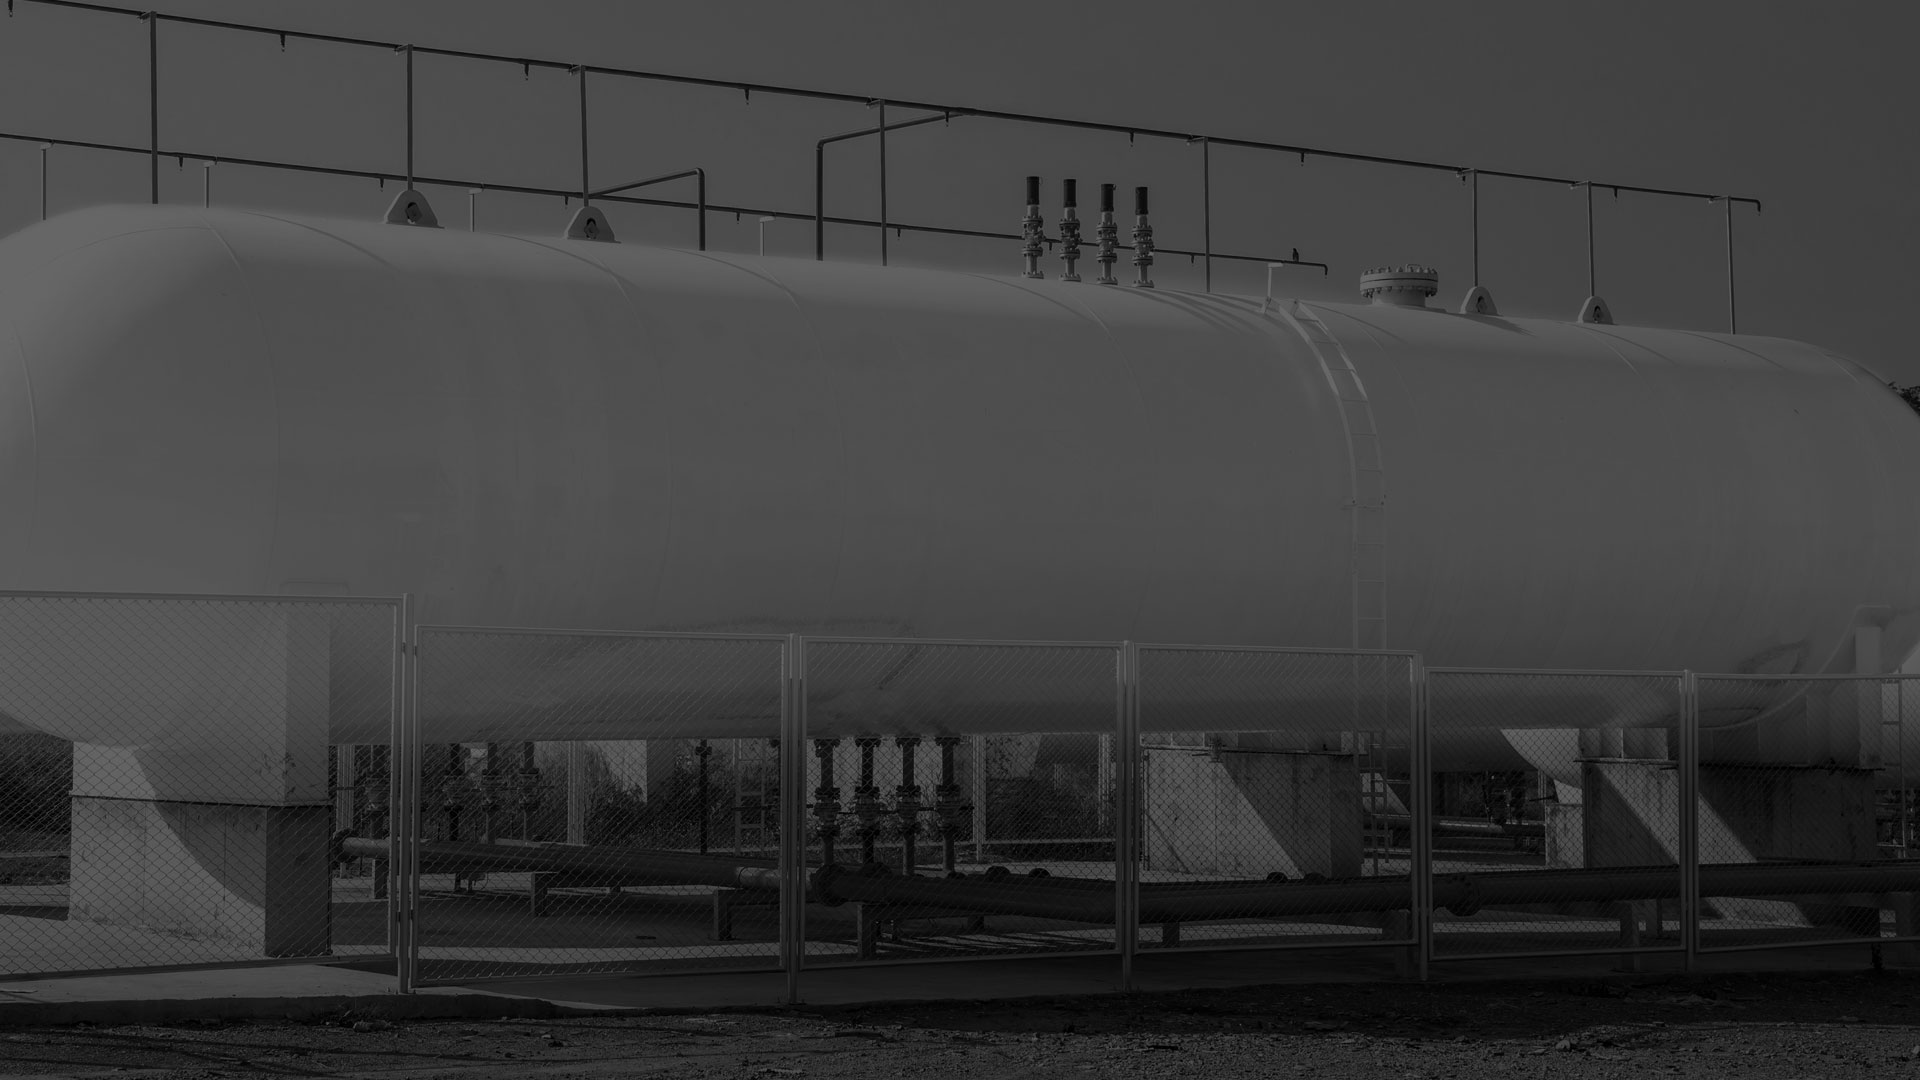 A darkened black and white image of a horizontal tank.